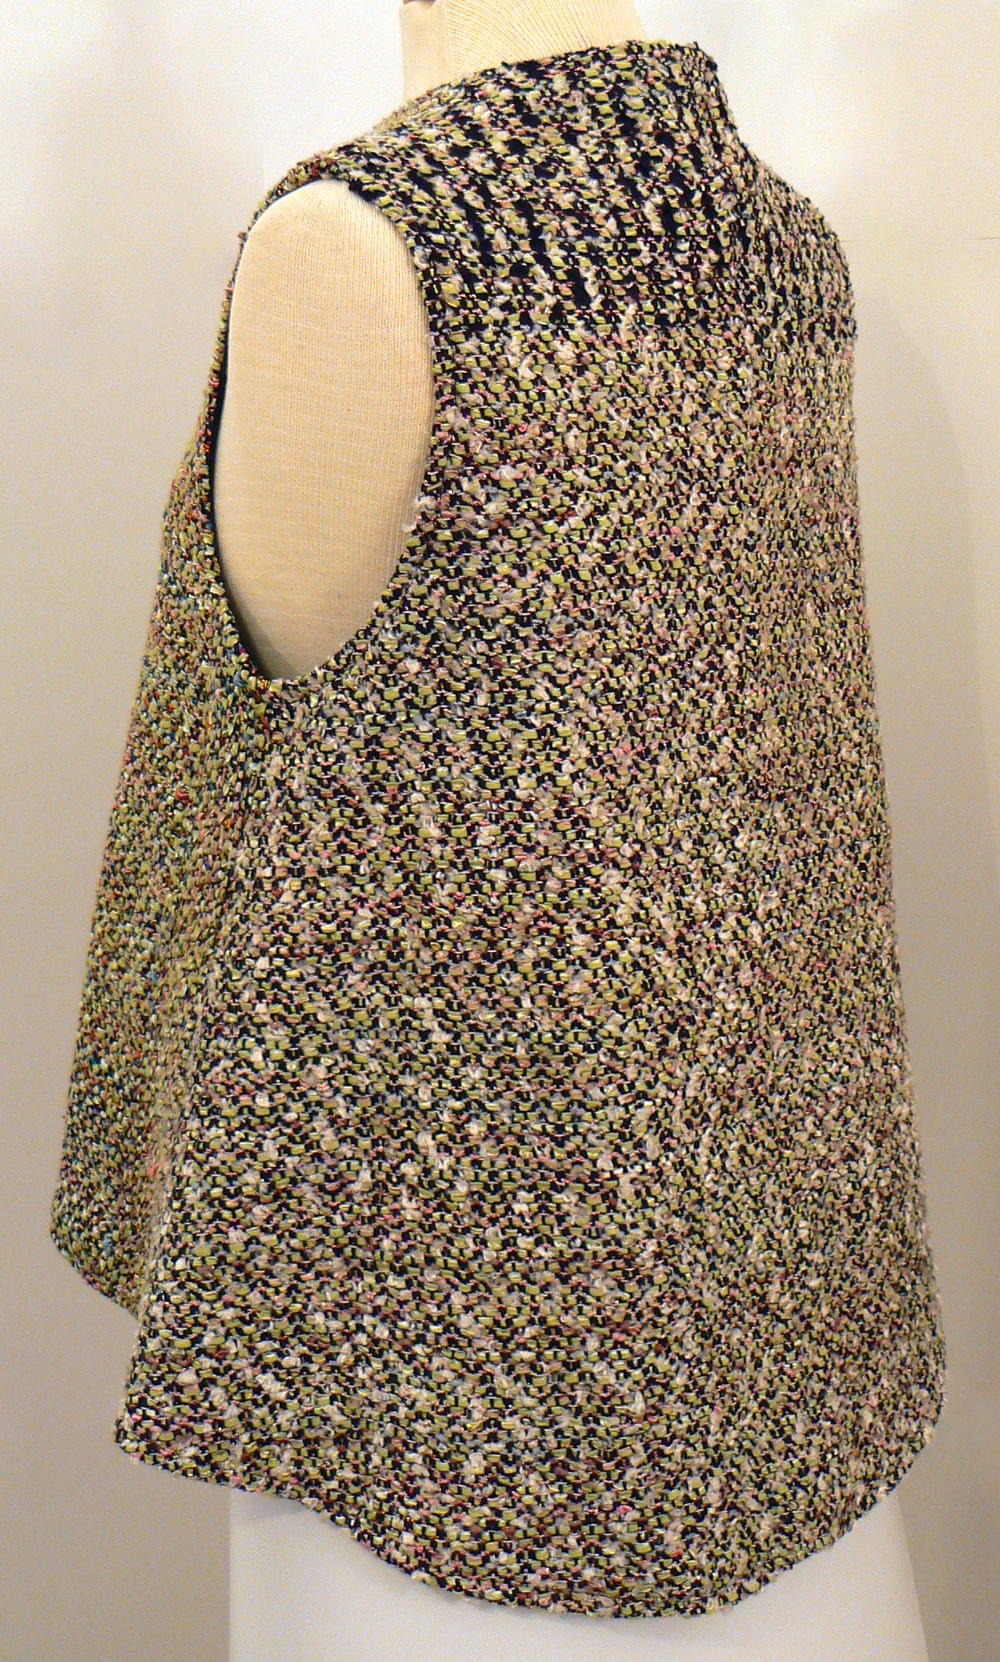 Handwoven Clothing, Vest, Kathleen Weir-West, 14-001.JPG